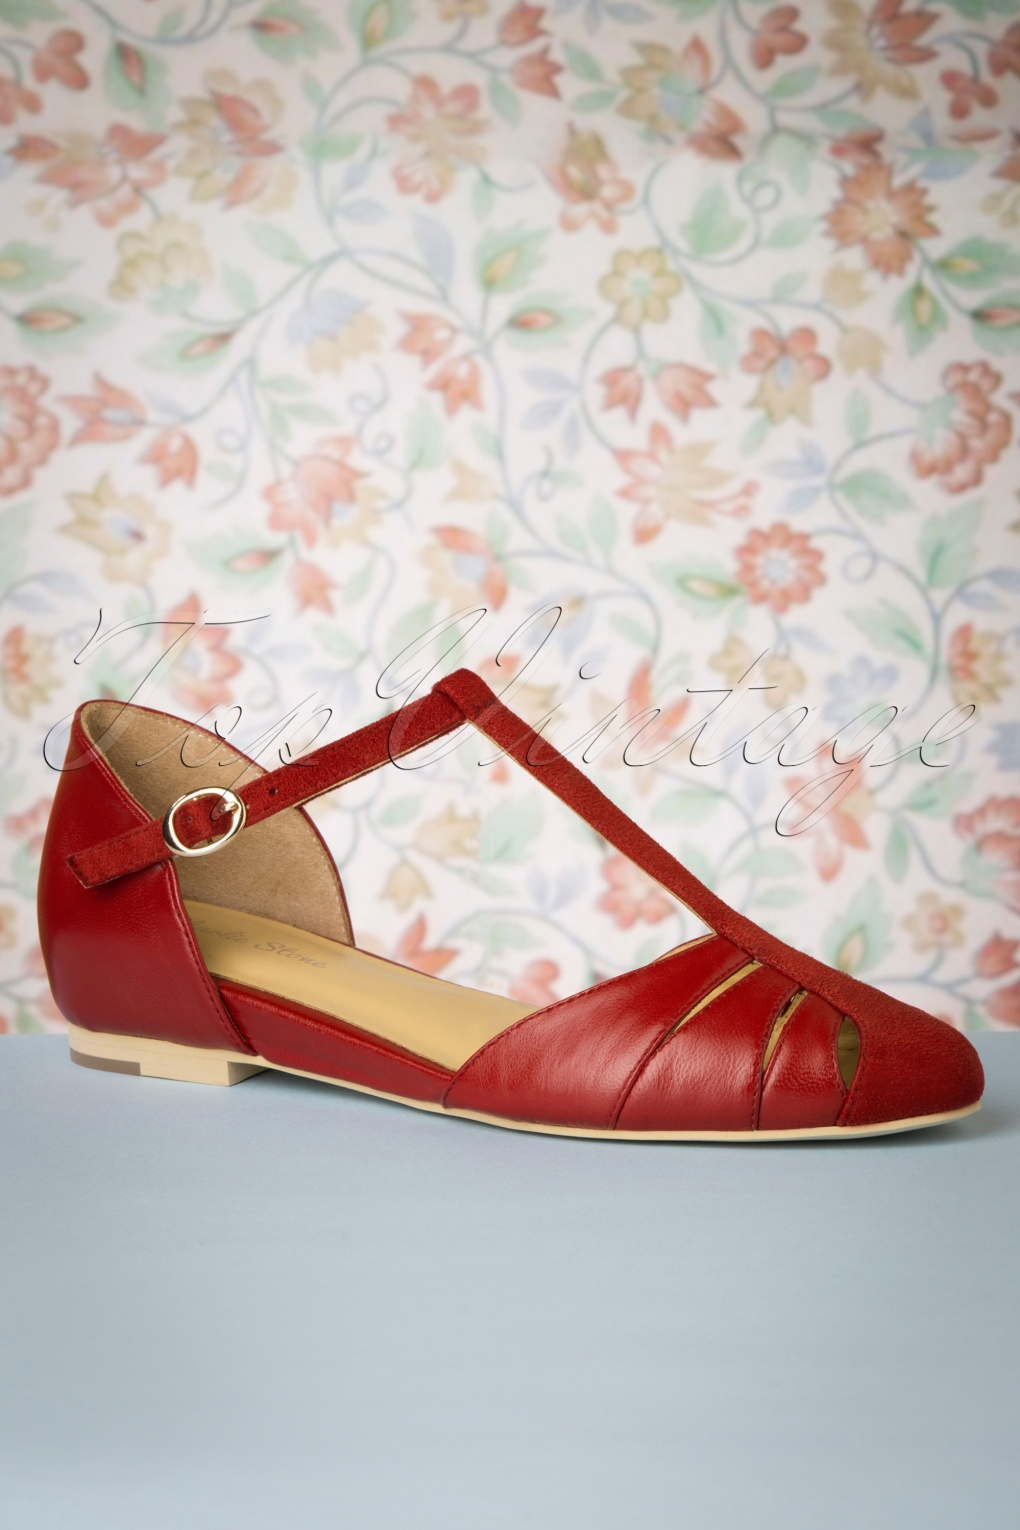 Vintage Style Shoes, Vintage Inspired Shoes 50s Toscana T-Strap Flats in Red £100.51 AT vintagedancer.com